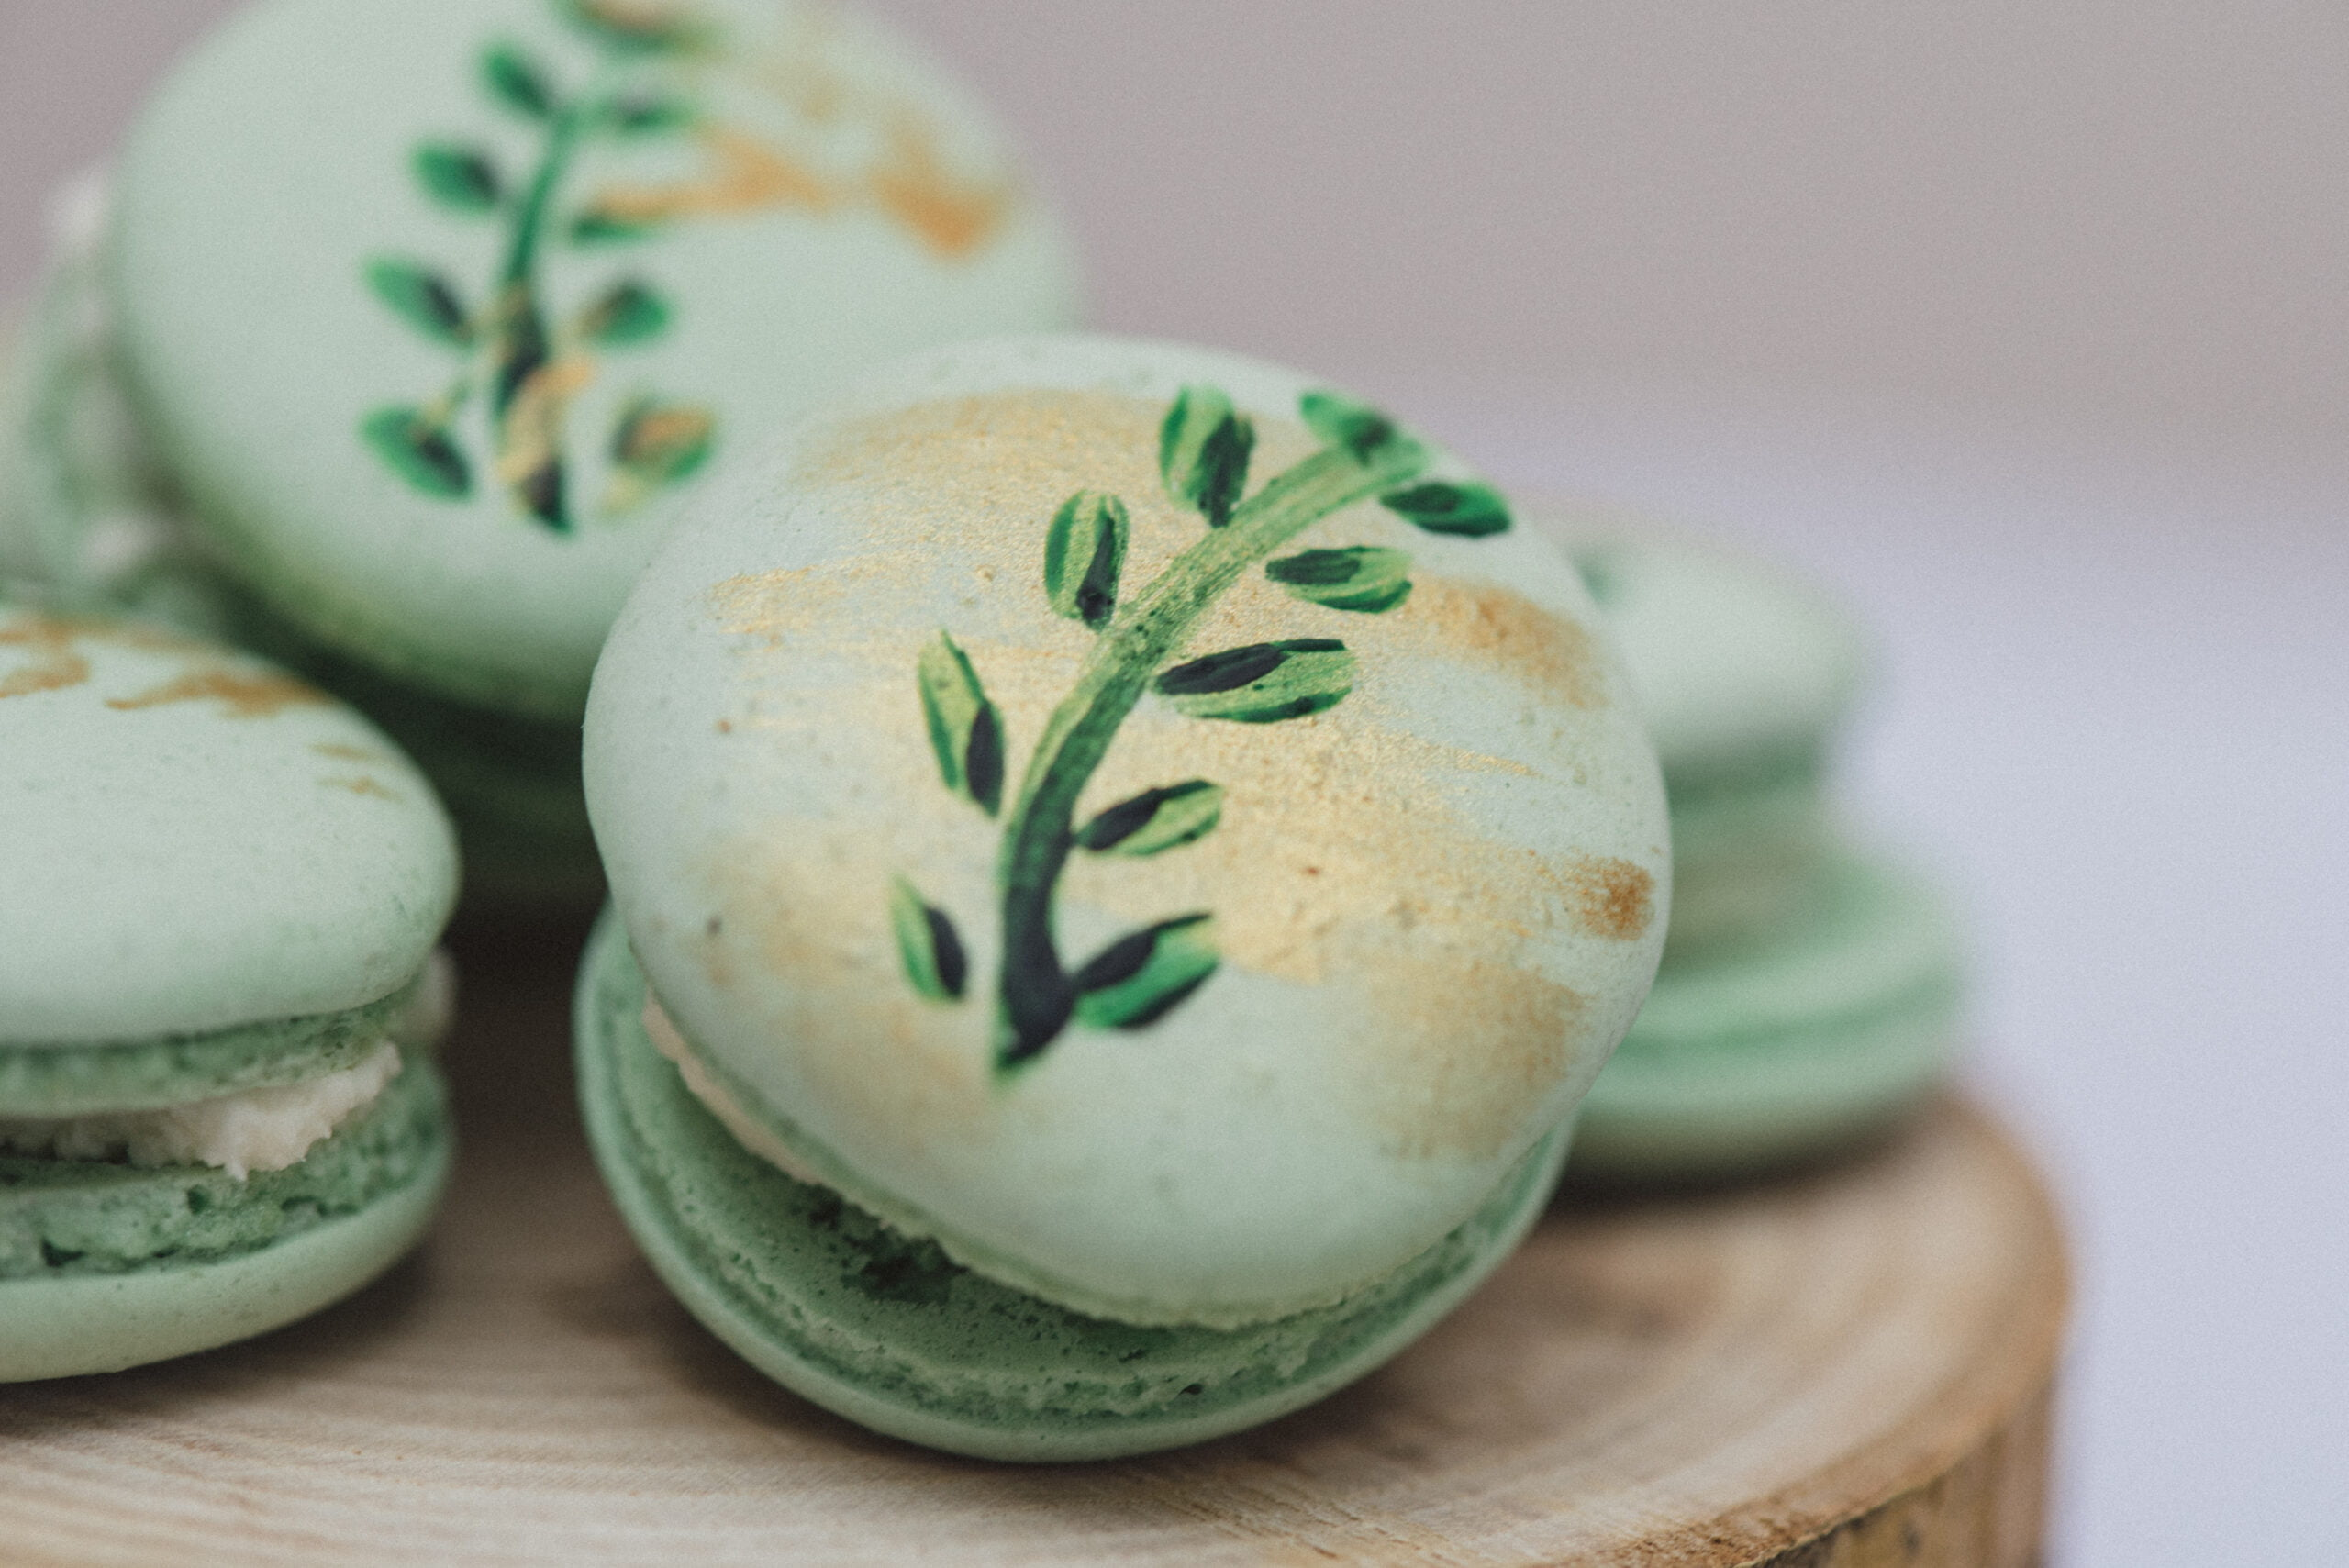 Handprinted green macarons cake class in Kent is back